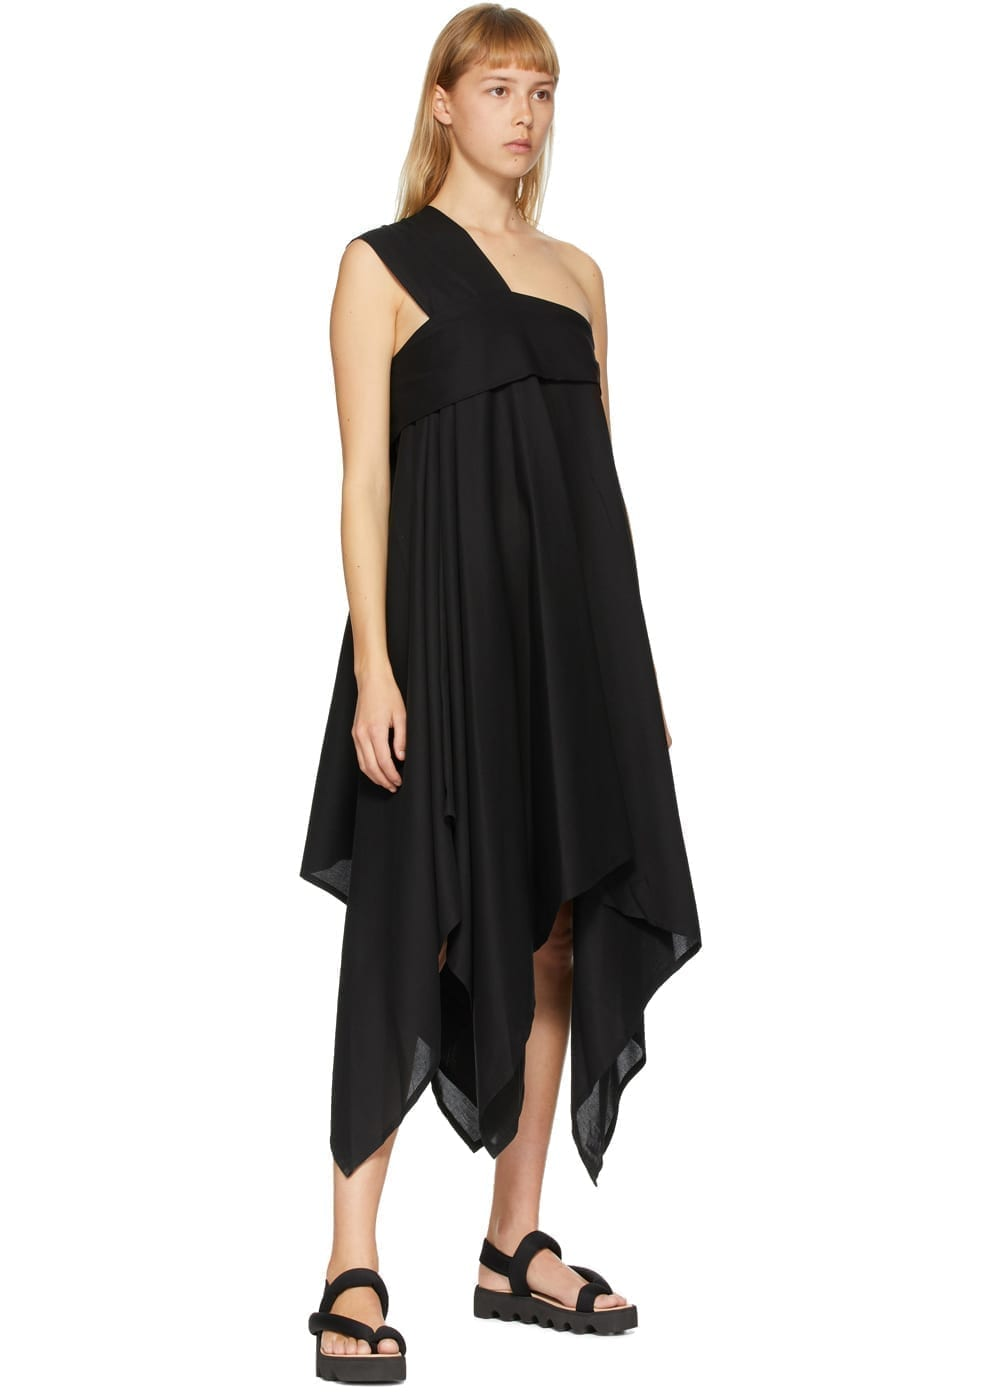 ISSEY MIYAKE Black Square Petal One-Shoulder Dress